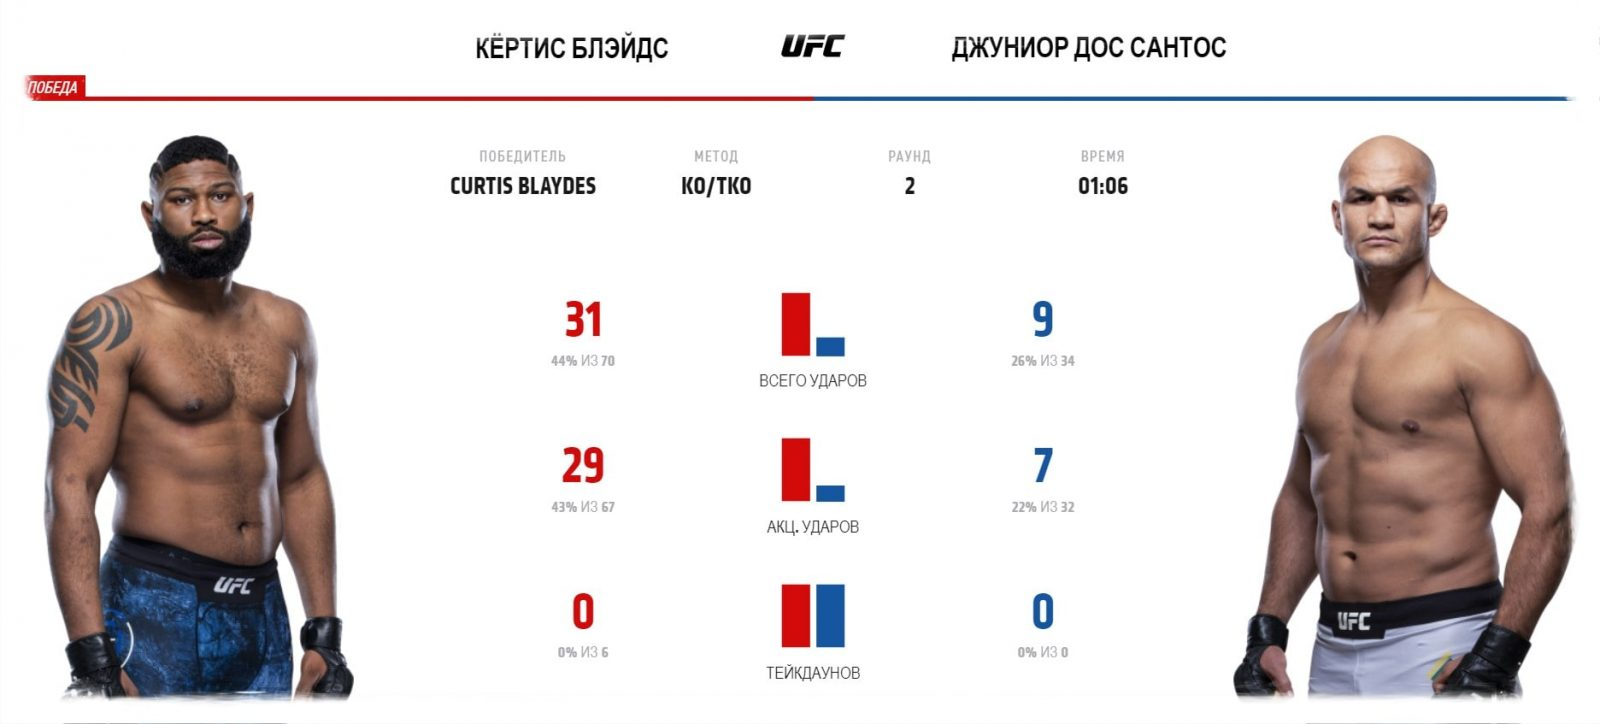 video-boya-dzhunior-dos-santos-kertis-blehjds-junior-dos-santos-curtis-blaydes-ufc-fight-night-166